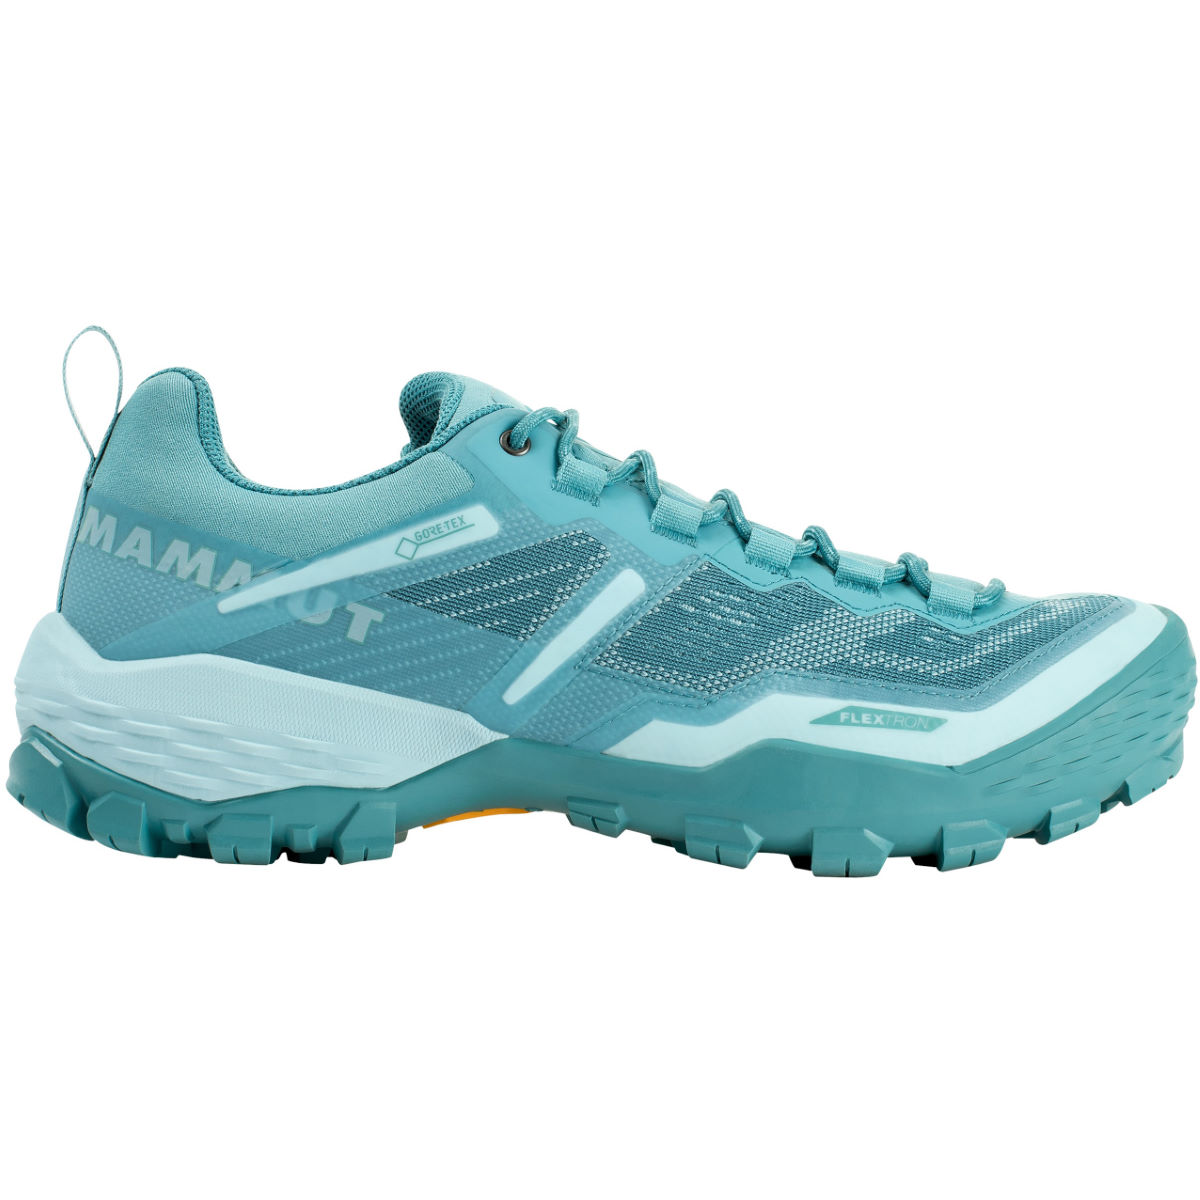 mammut Mammut womens Ducan Low GTX Shoes   Shoes